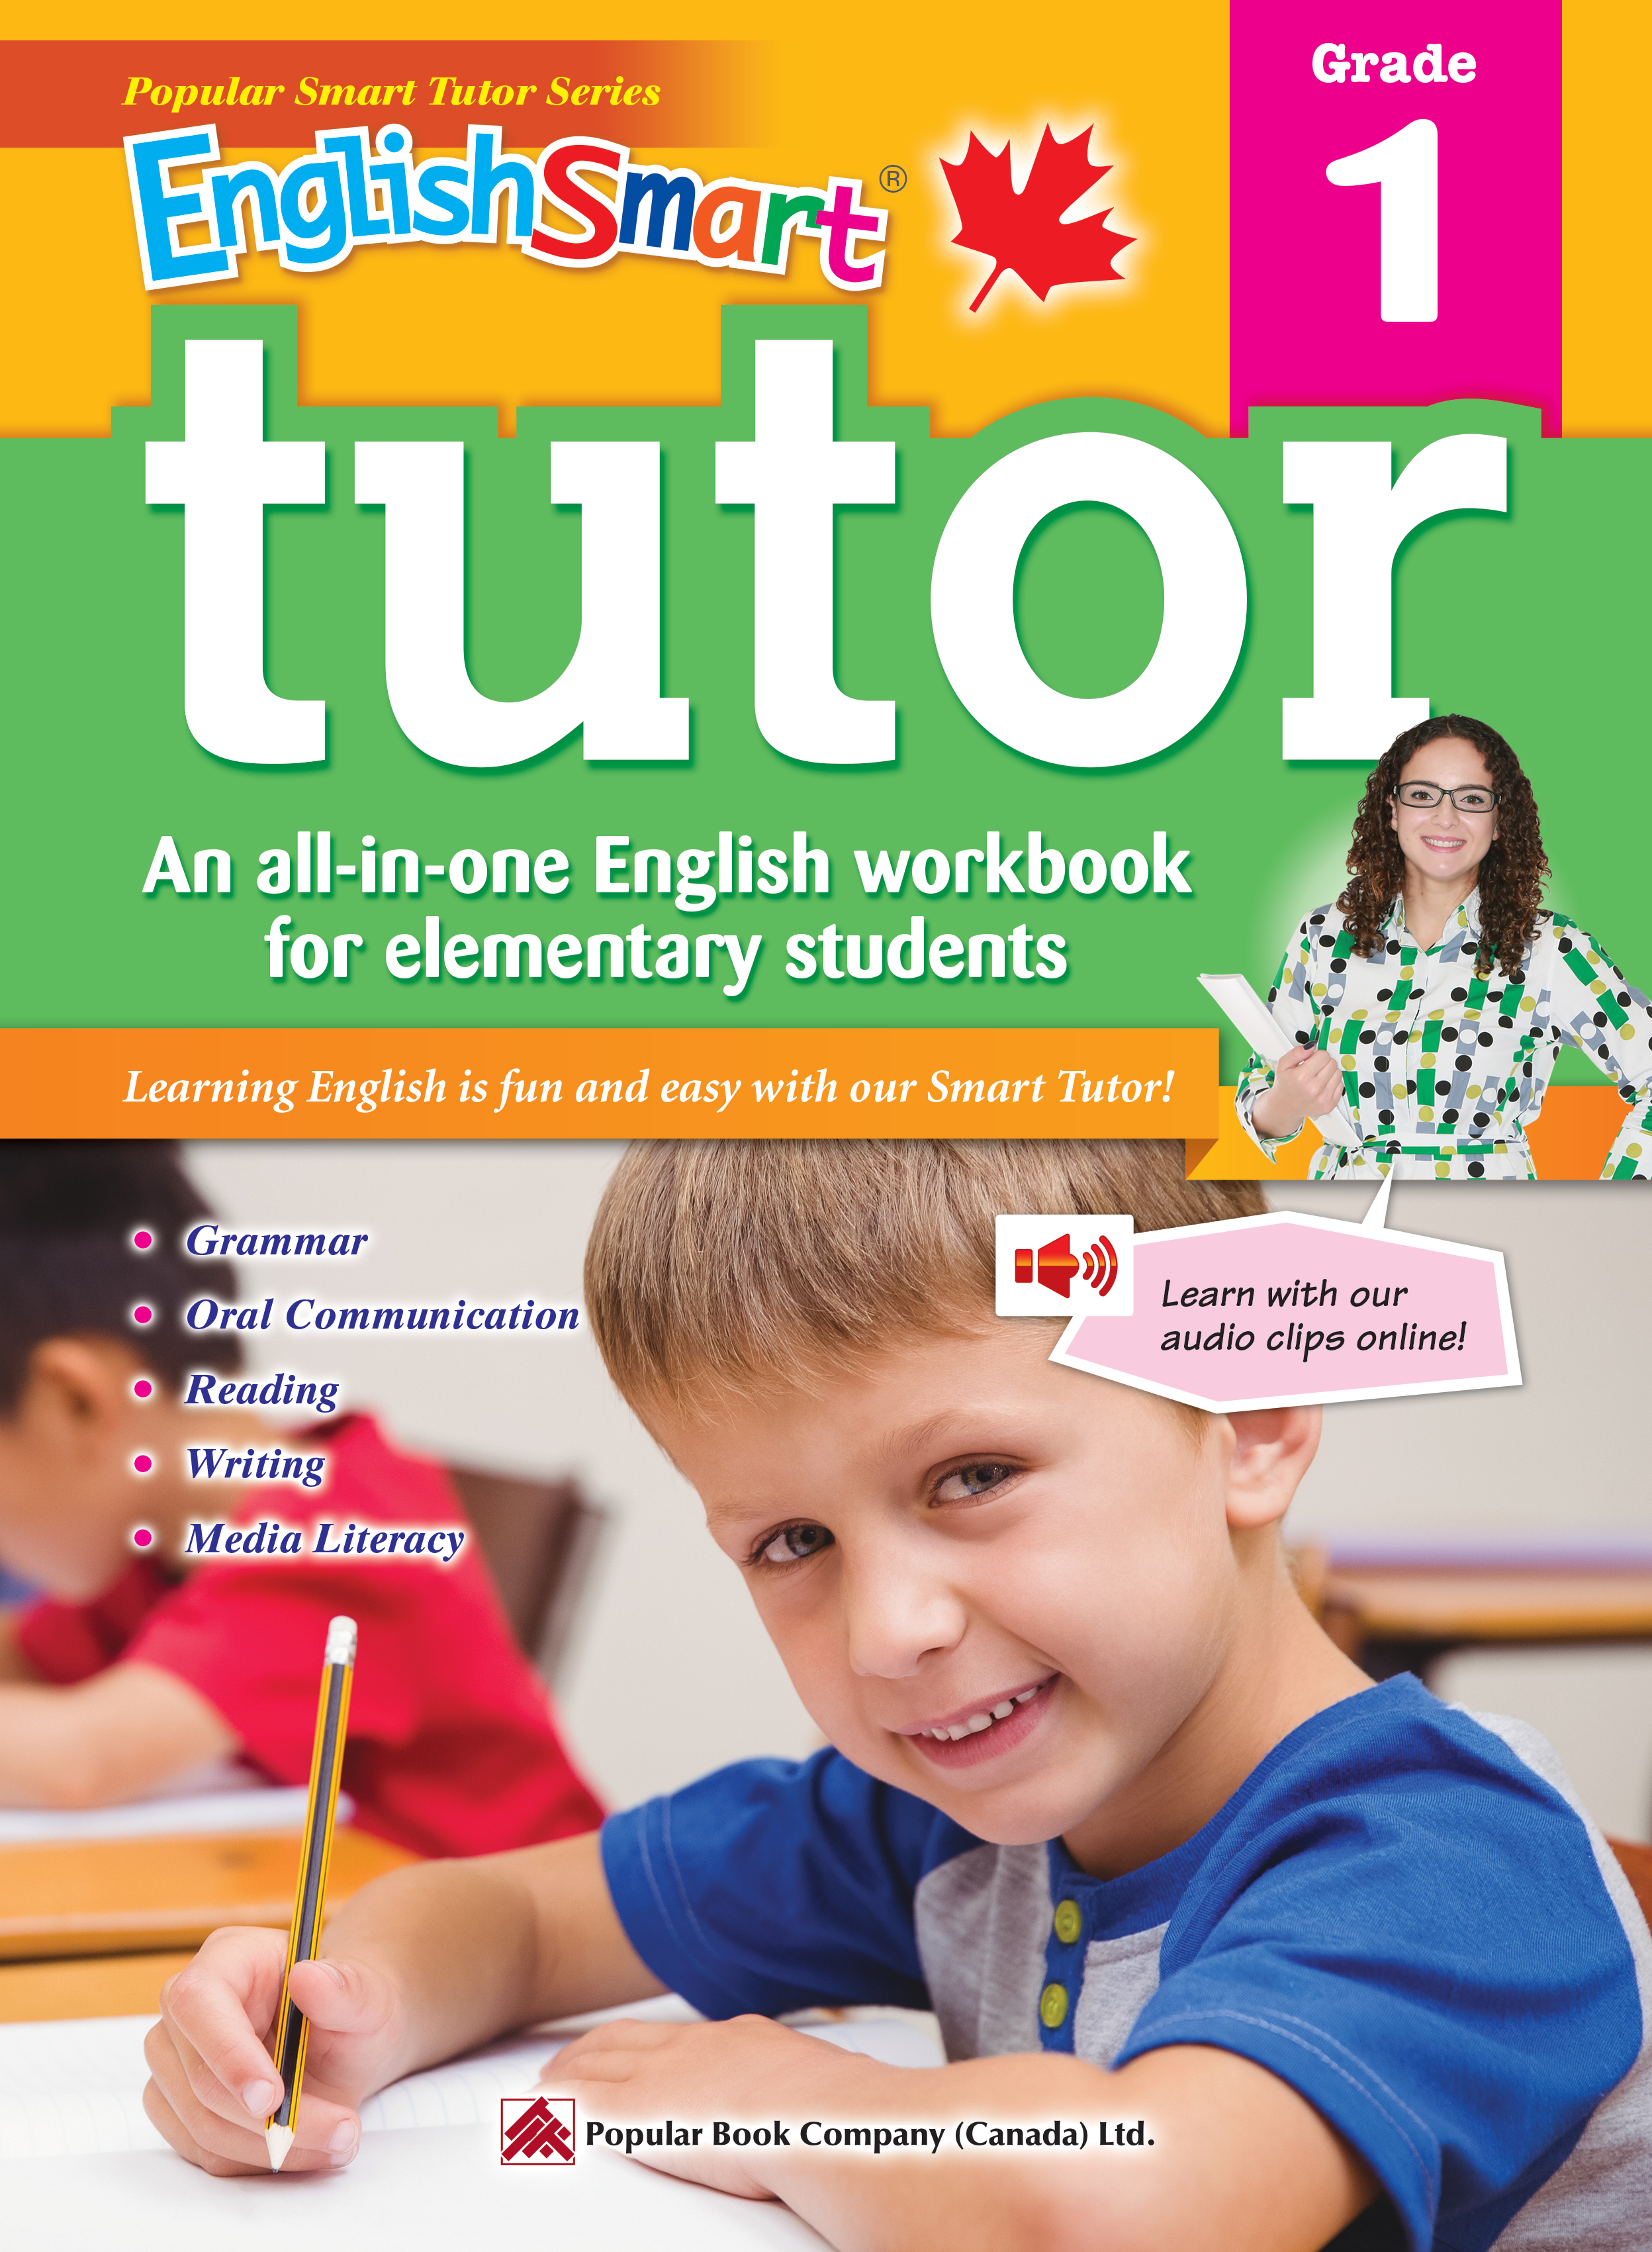 A Grade 2 English Workbook with corresponding audio clips to develop and improve oral and listening skills EnglishSmart Tutor 2